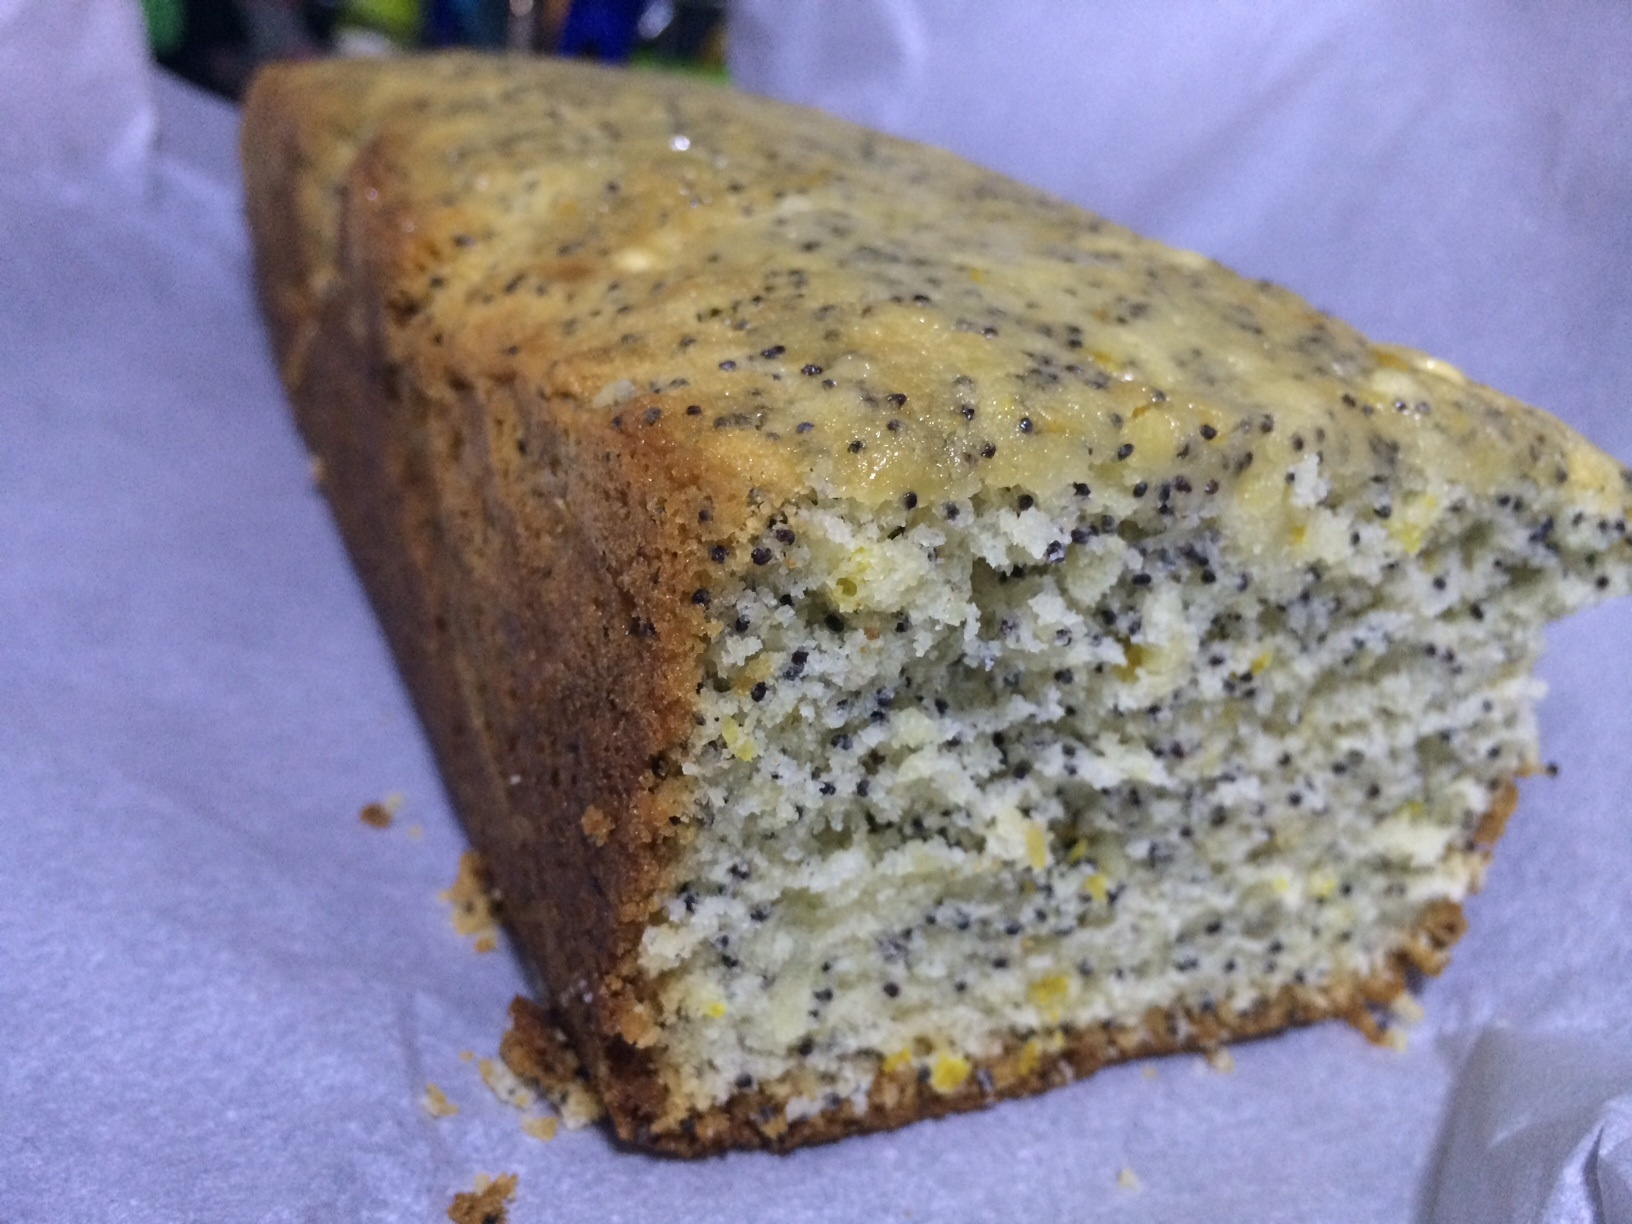 Ode to my Lemon Poppy Seed Loaf